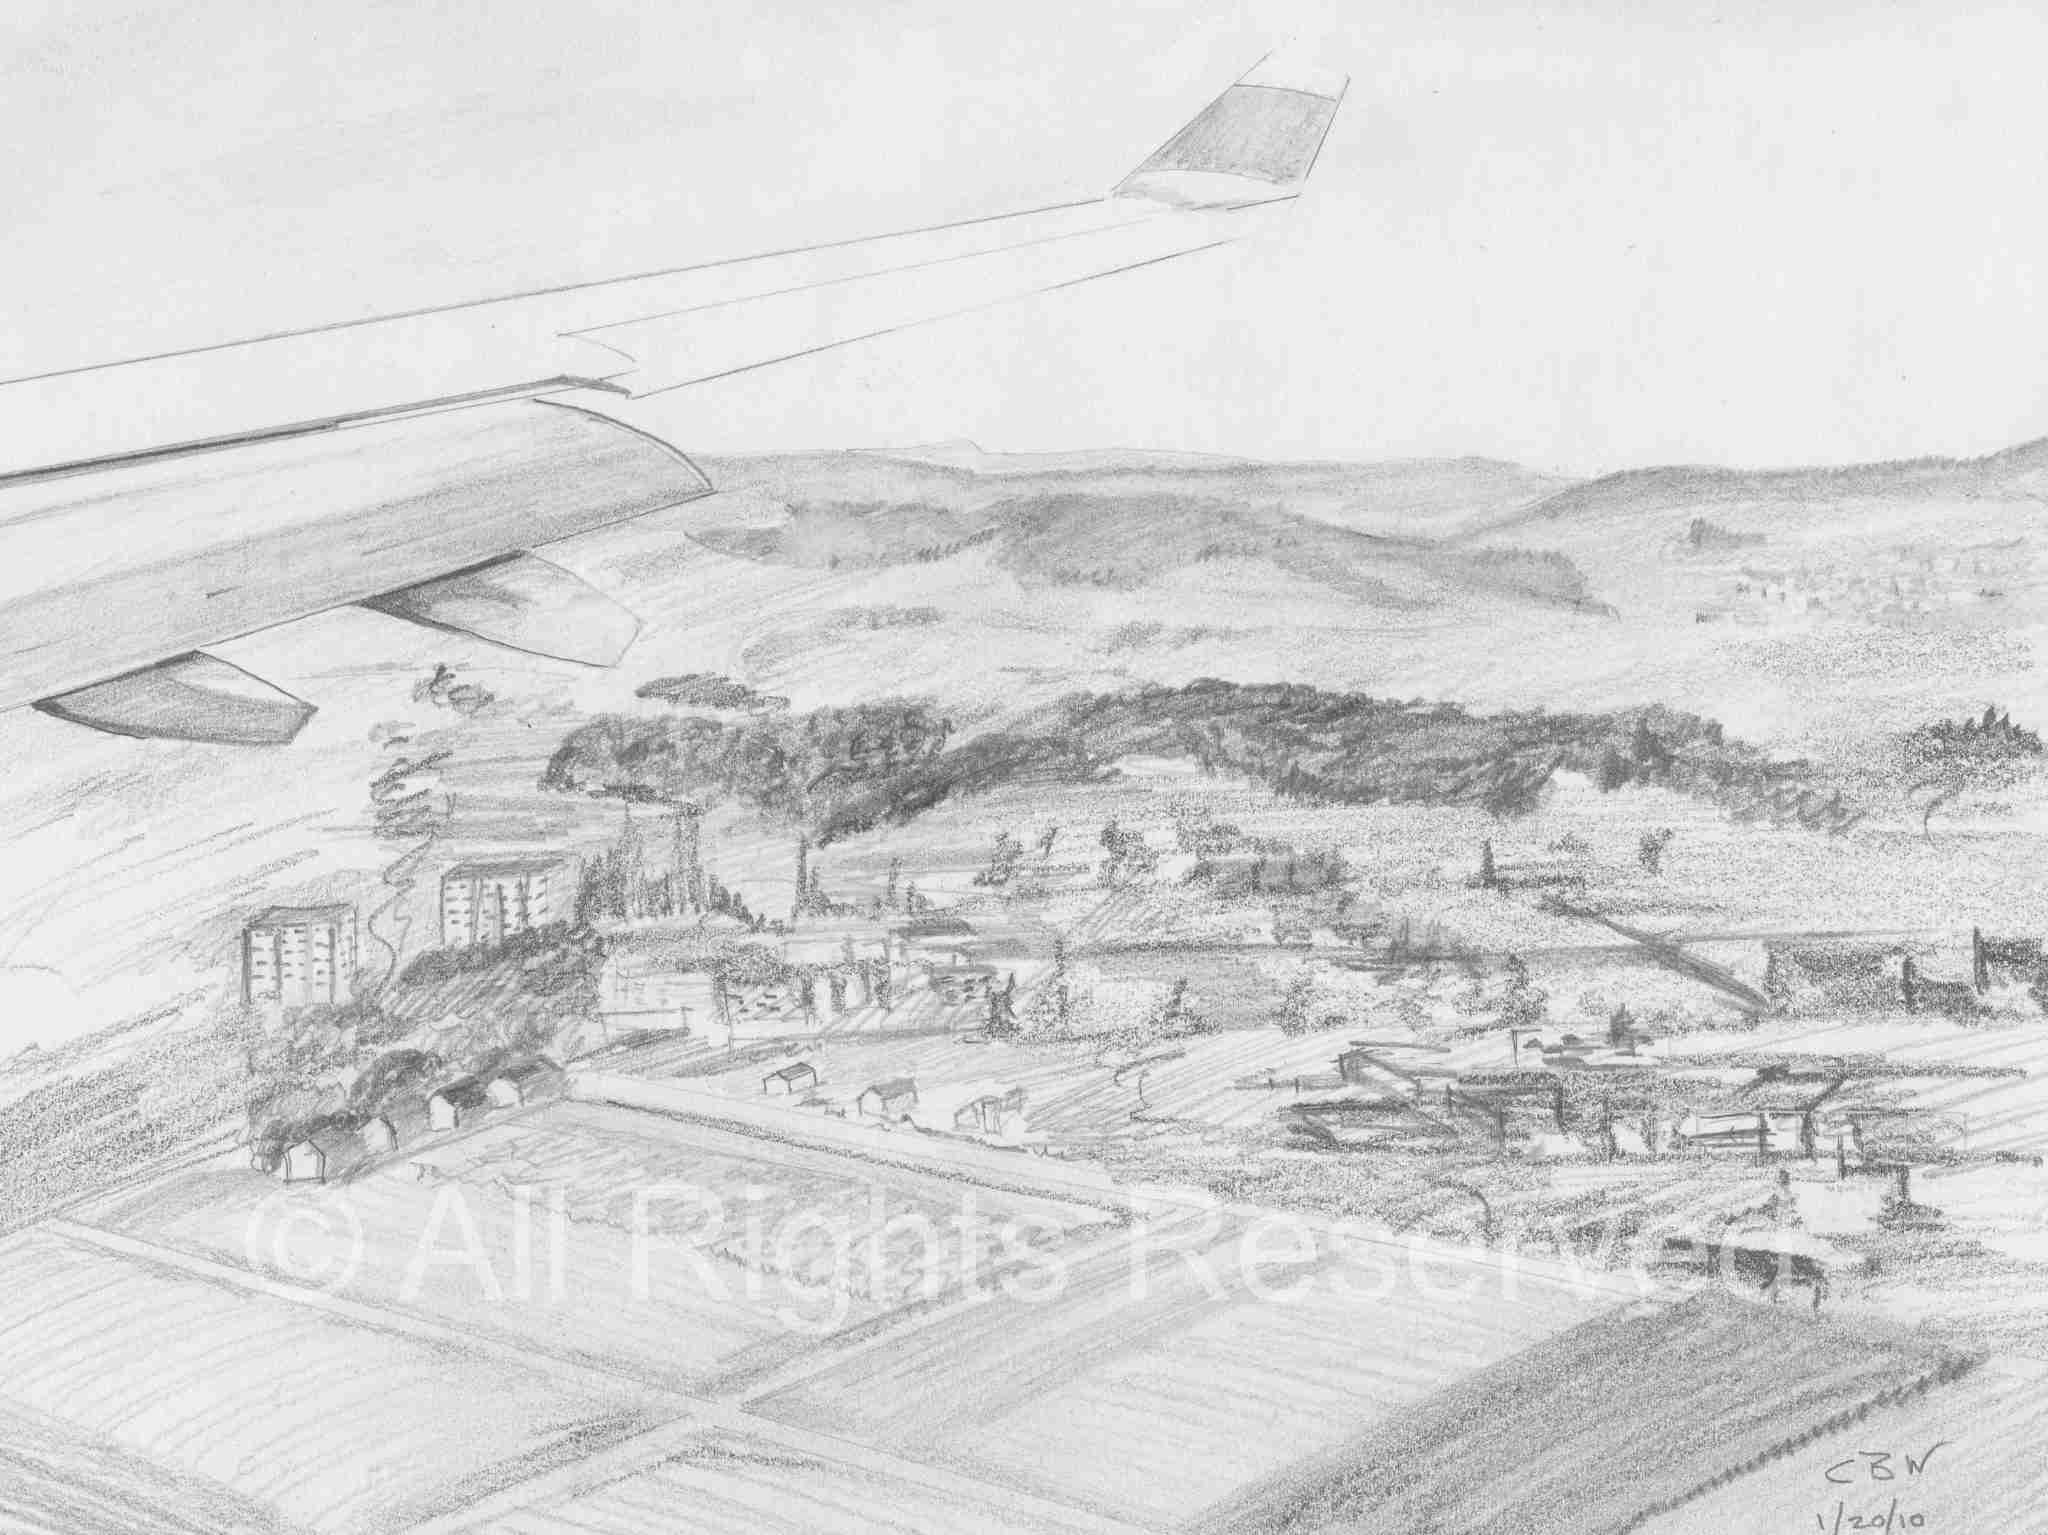 drawing of a view from an airplane window